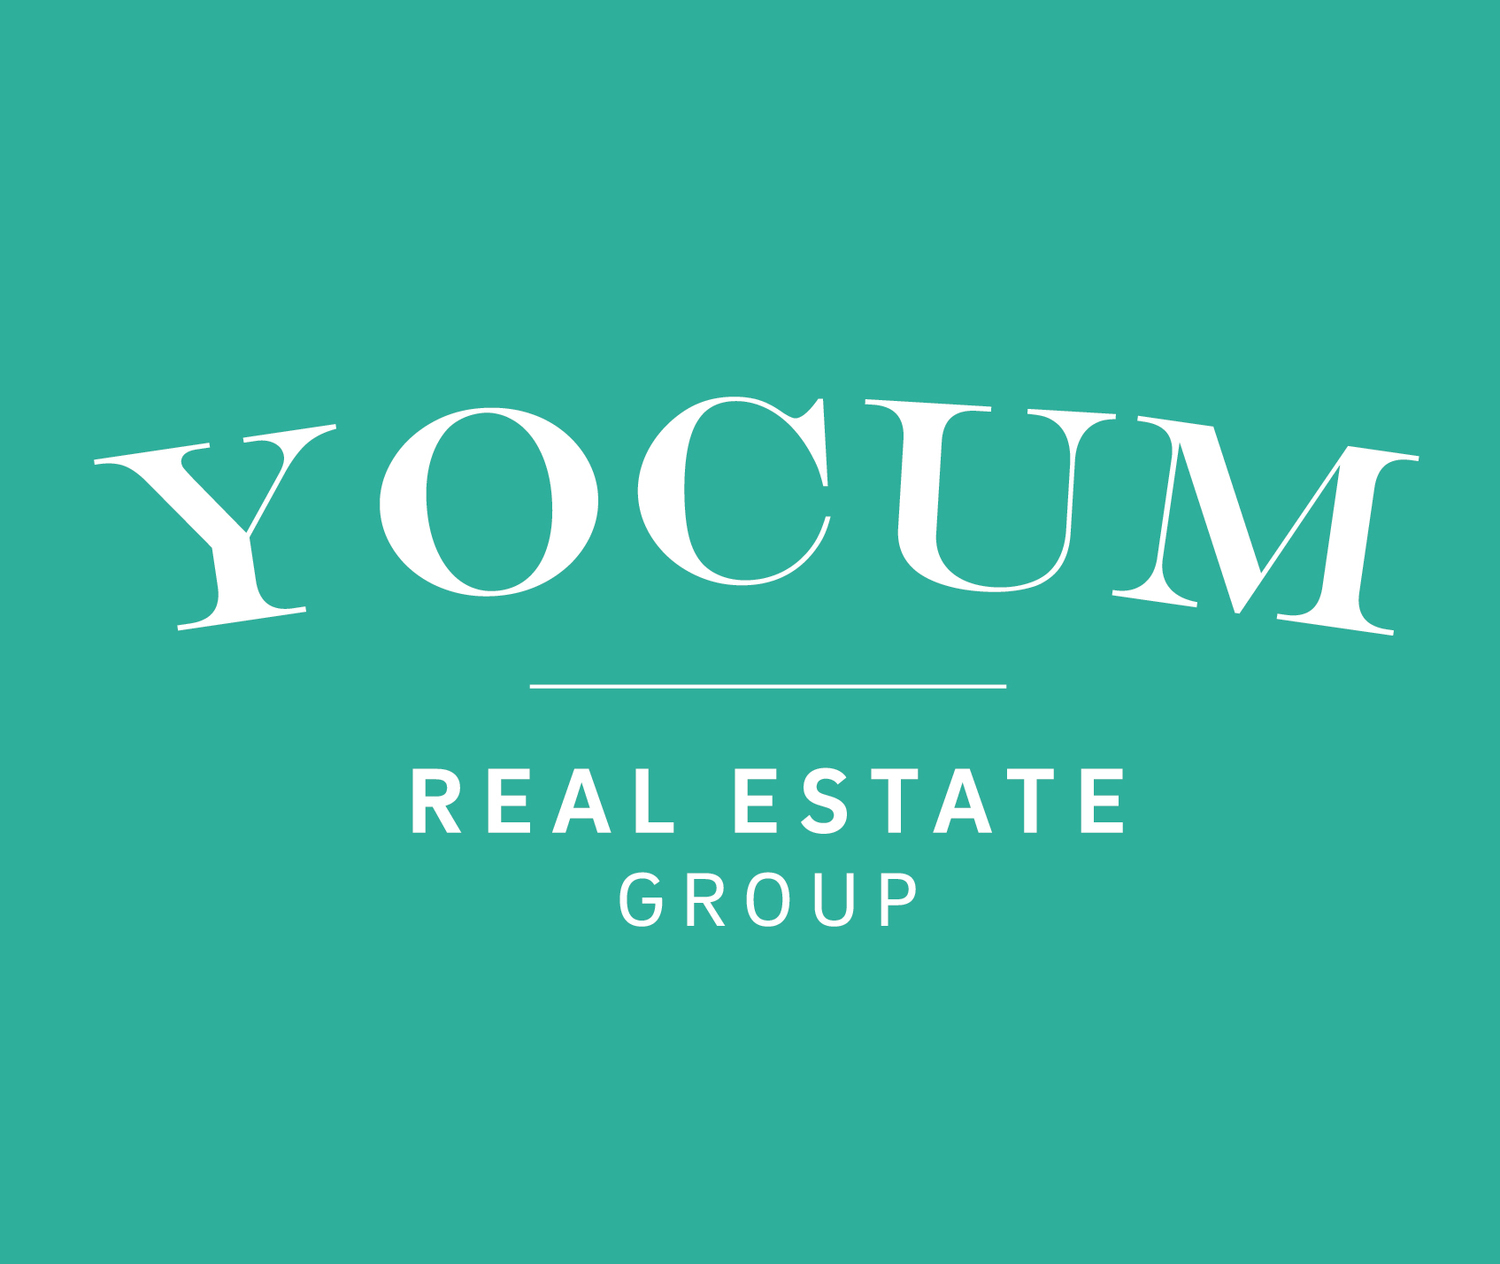 Yocum Real Estate Group